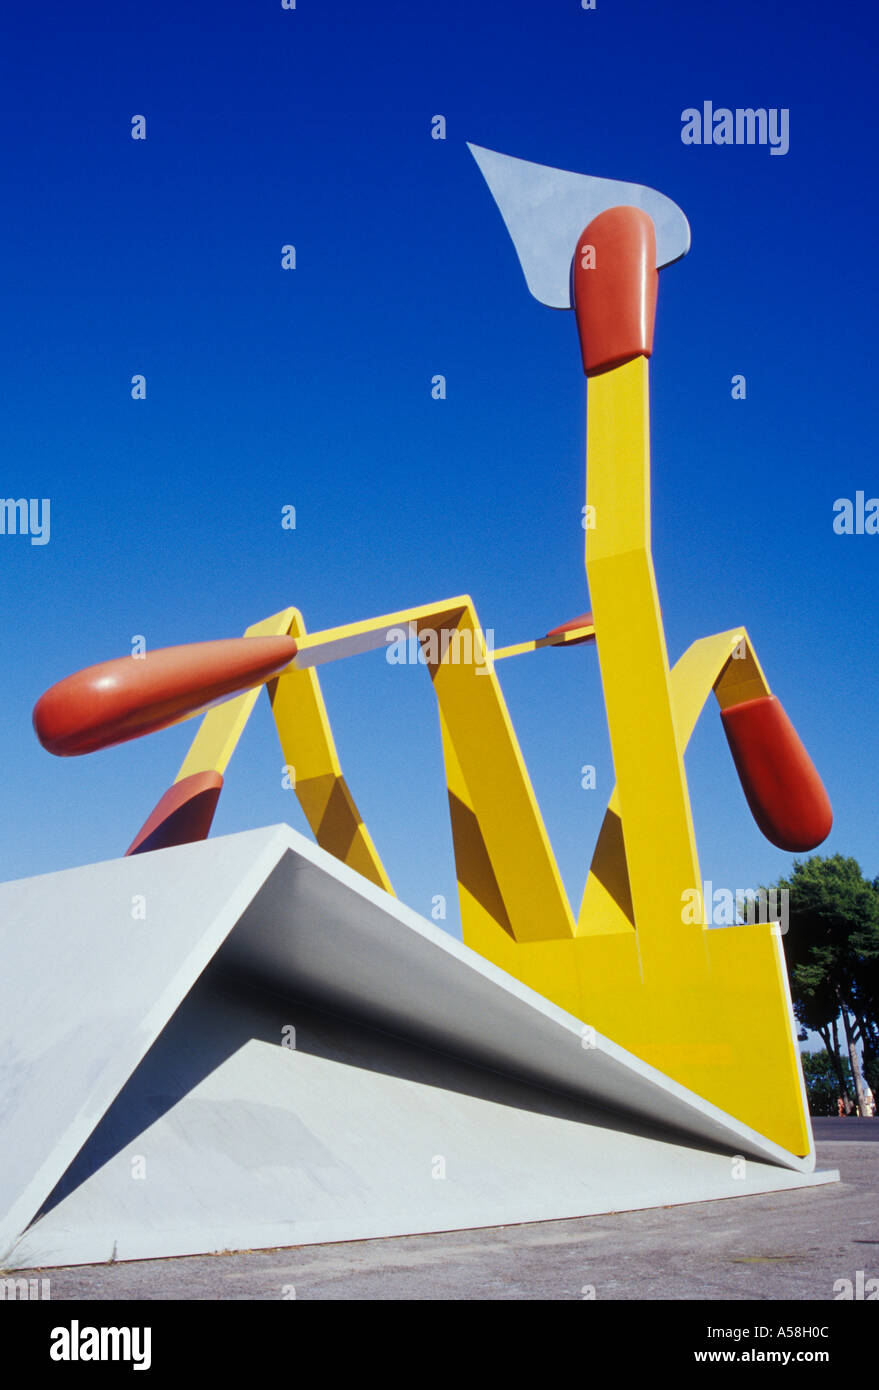 Avinguda Cardenal Vidal y Barraquer Horter Barcelona Spain detail of Claes Oldenburg's Matches 20th century sculpture - Stock Image